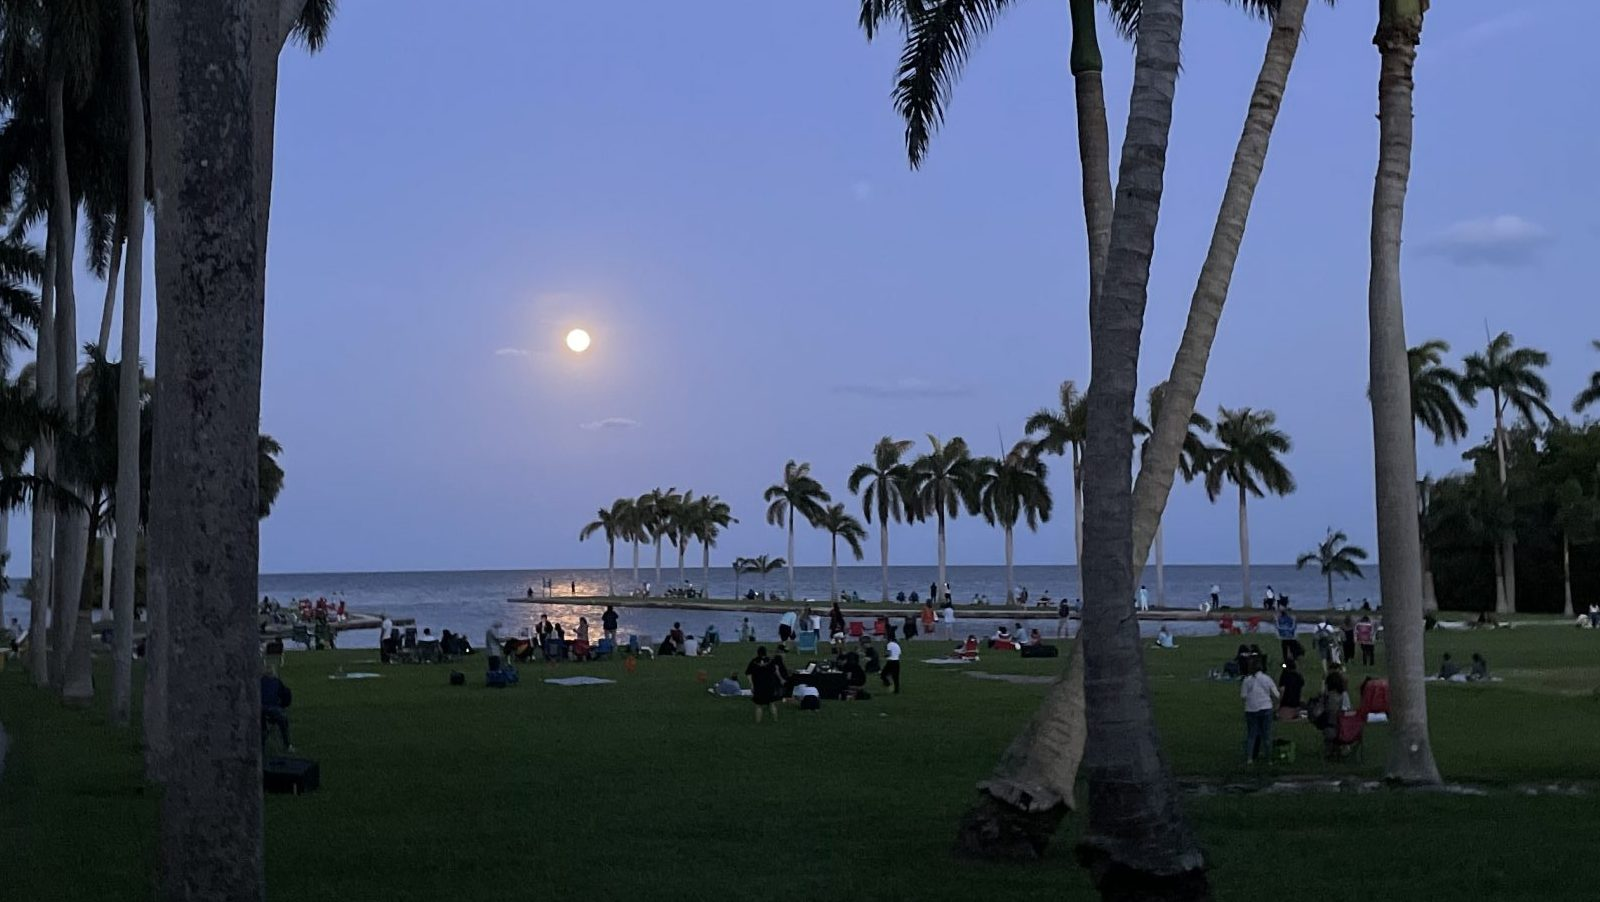 Crowd gathered on the main lawn of Deering Estate for Super Moon viewing